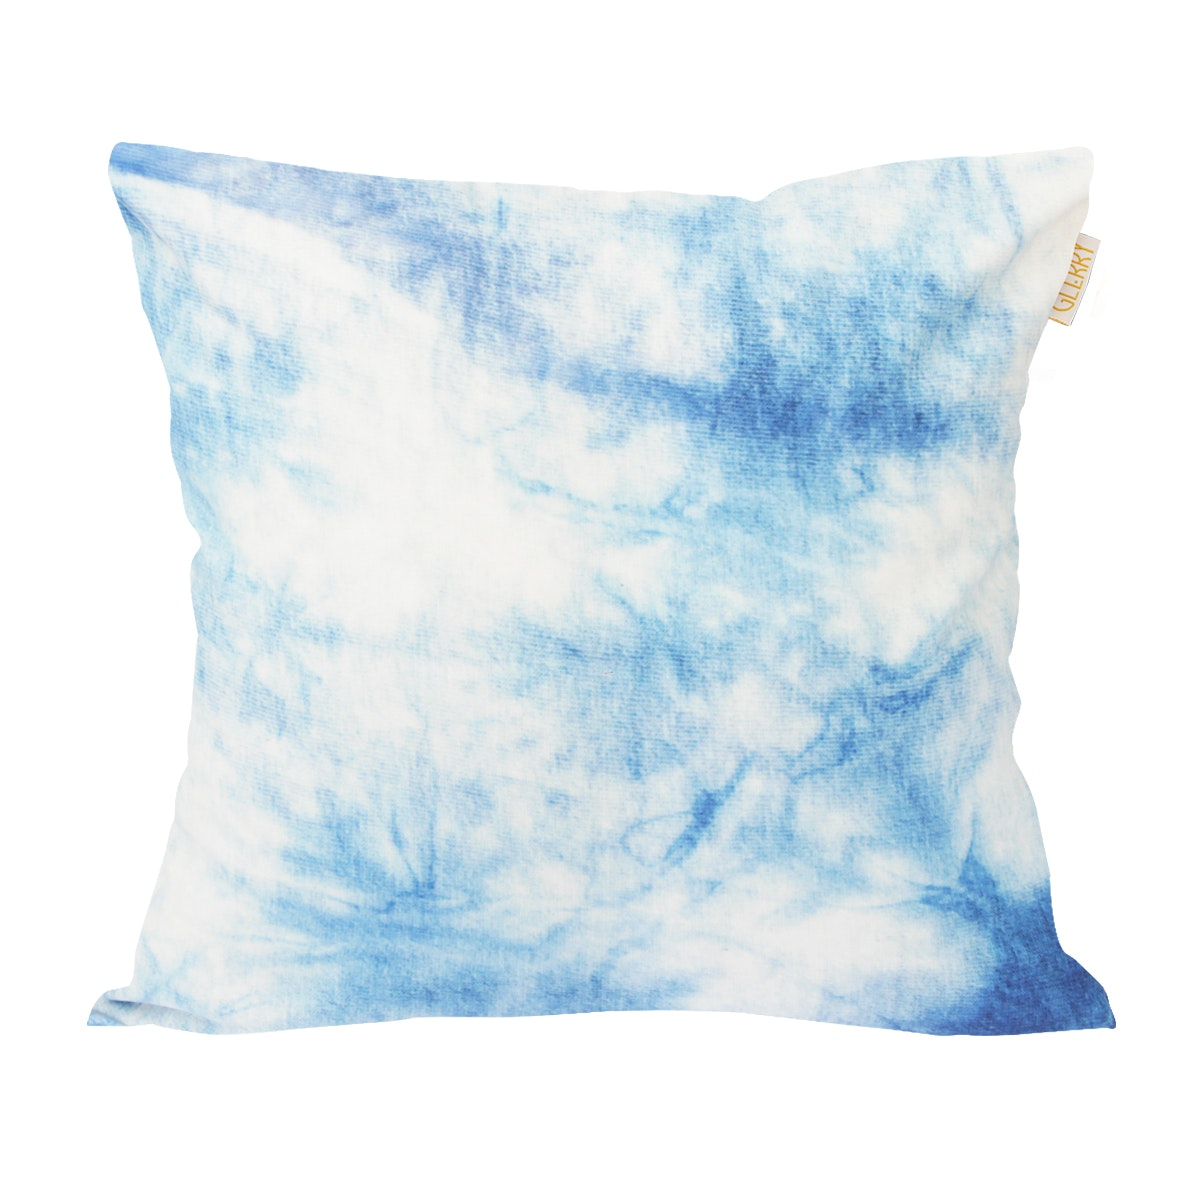 Glerry Home Decor Blue Froth Cushion 40x40cm